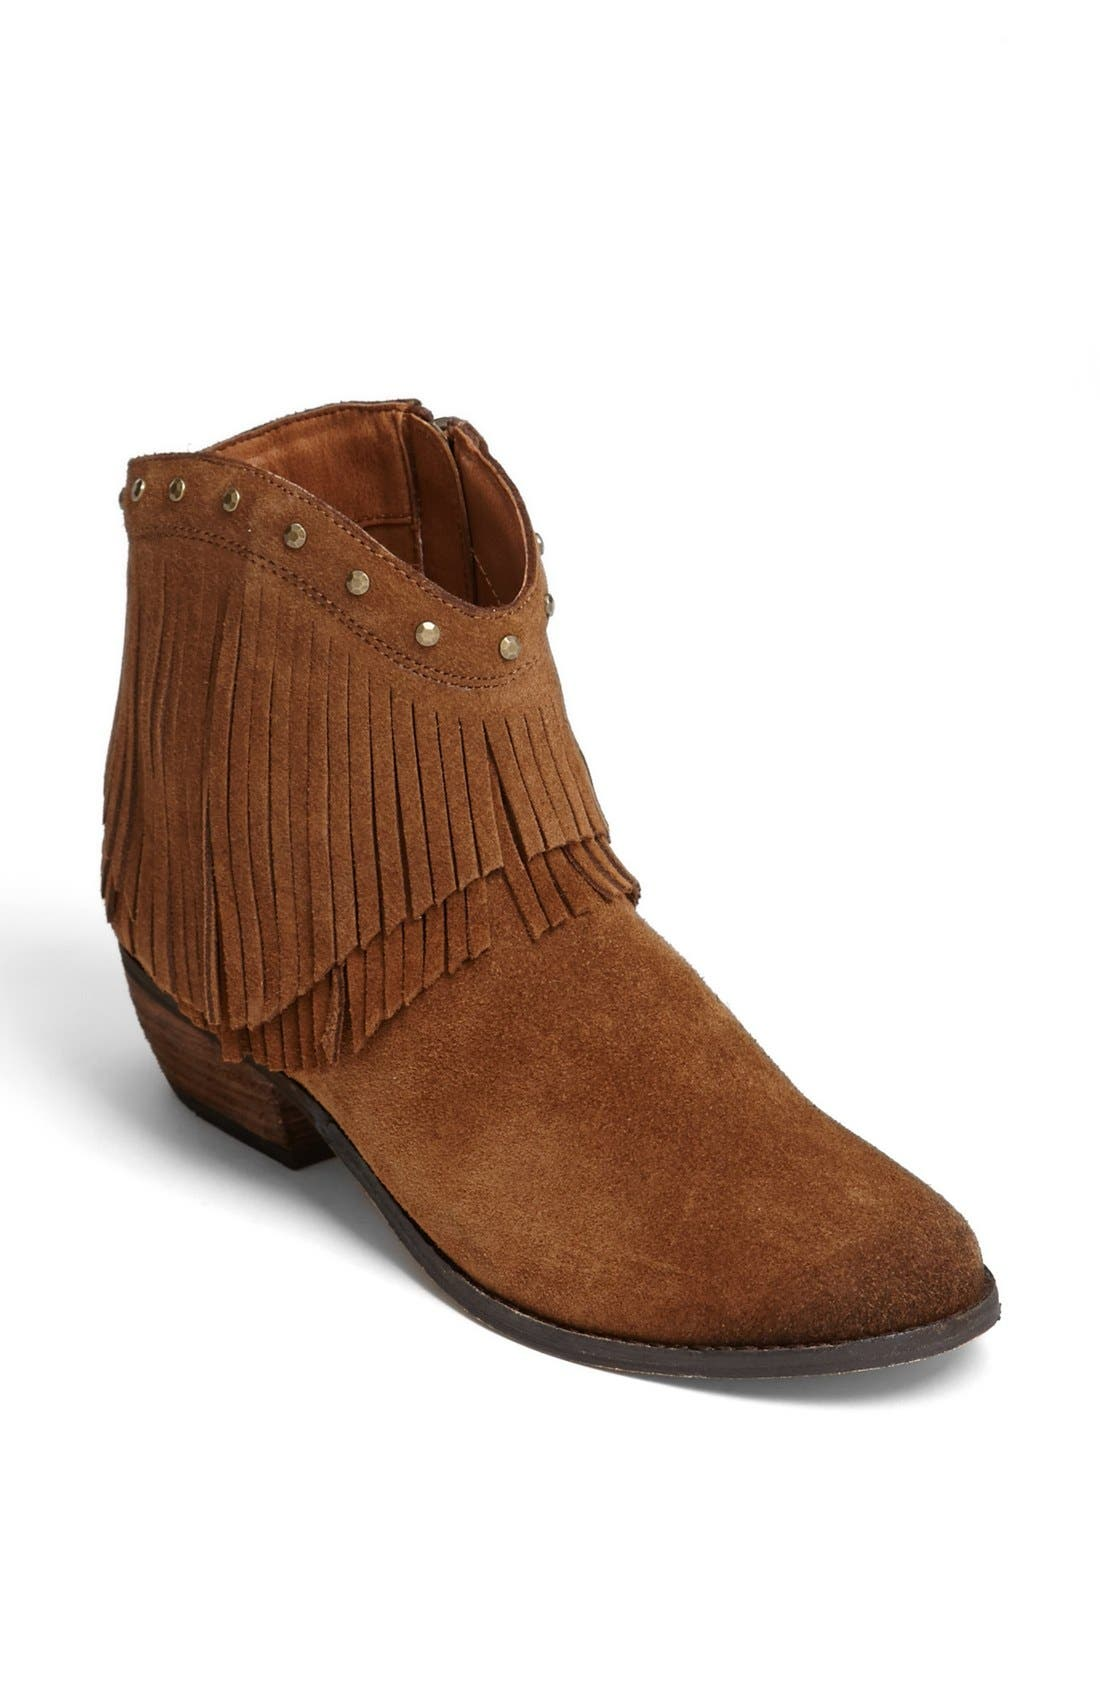 Alternate Image 1 Selected - Minnetonka 'Bandera' Boot